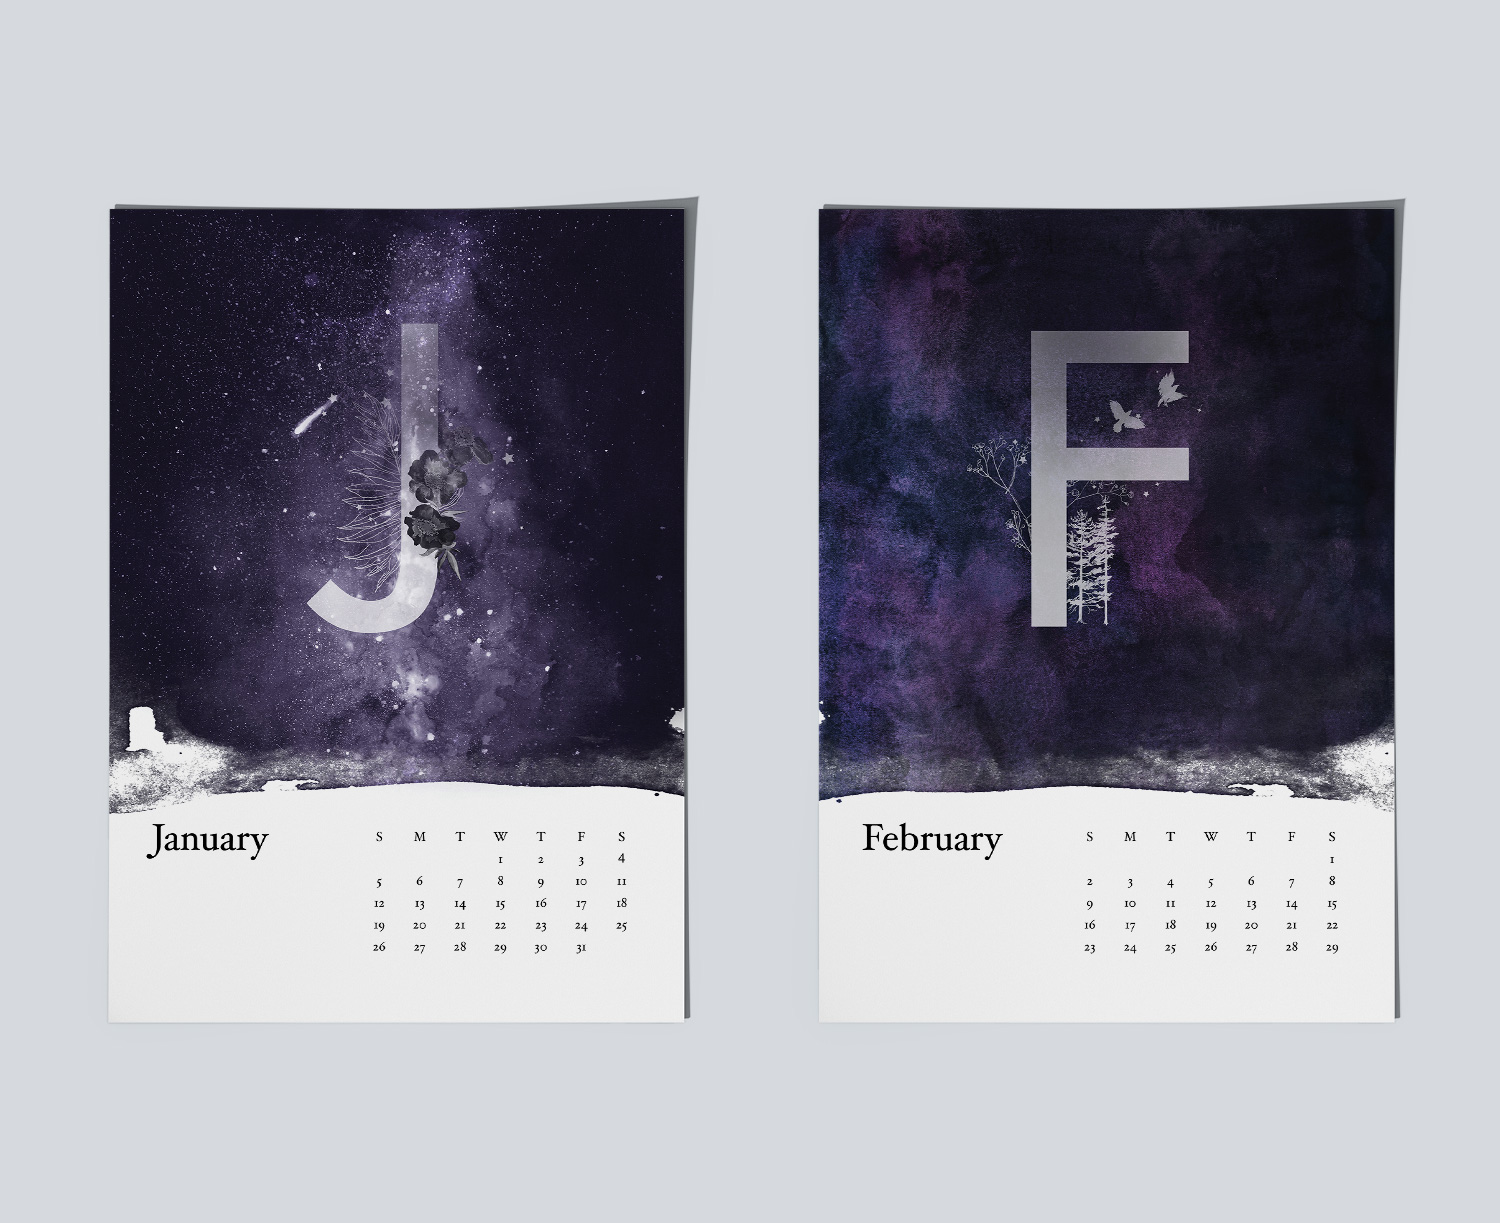 Example of magical night sky paintings for calendar.Example of magical night sky paintings for January and February months.